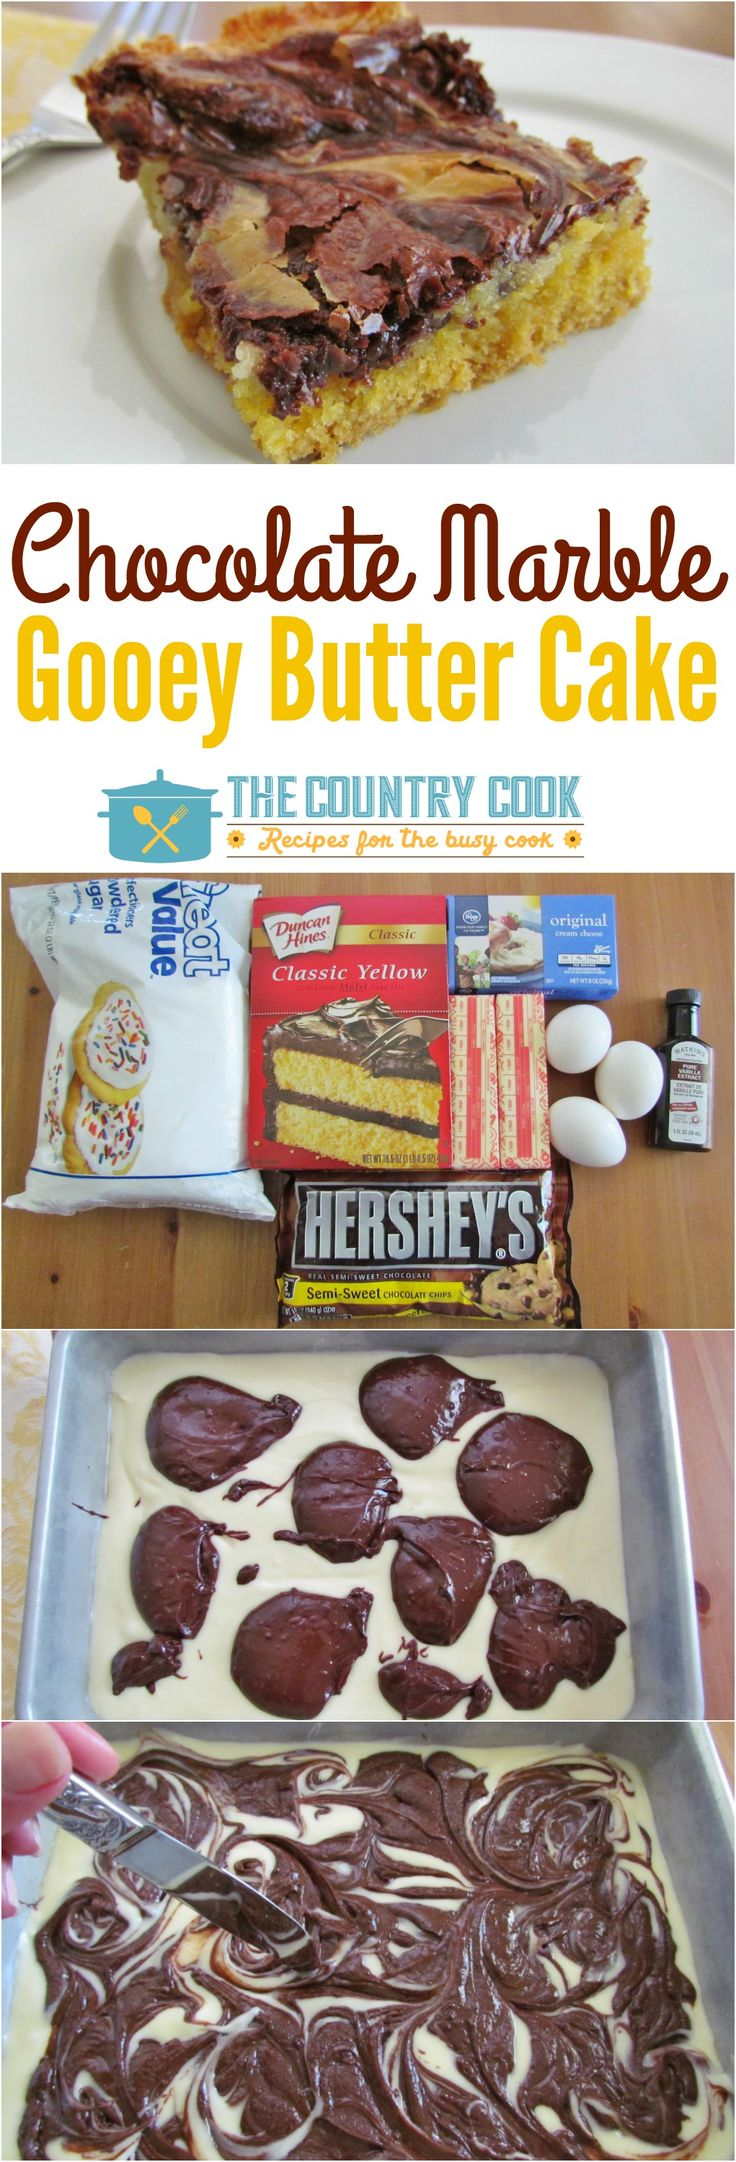 Easy chocolate cake recipes from box